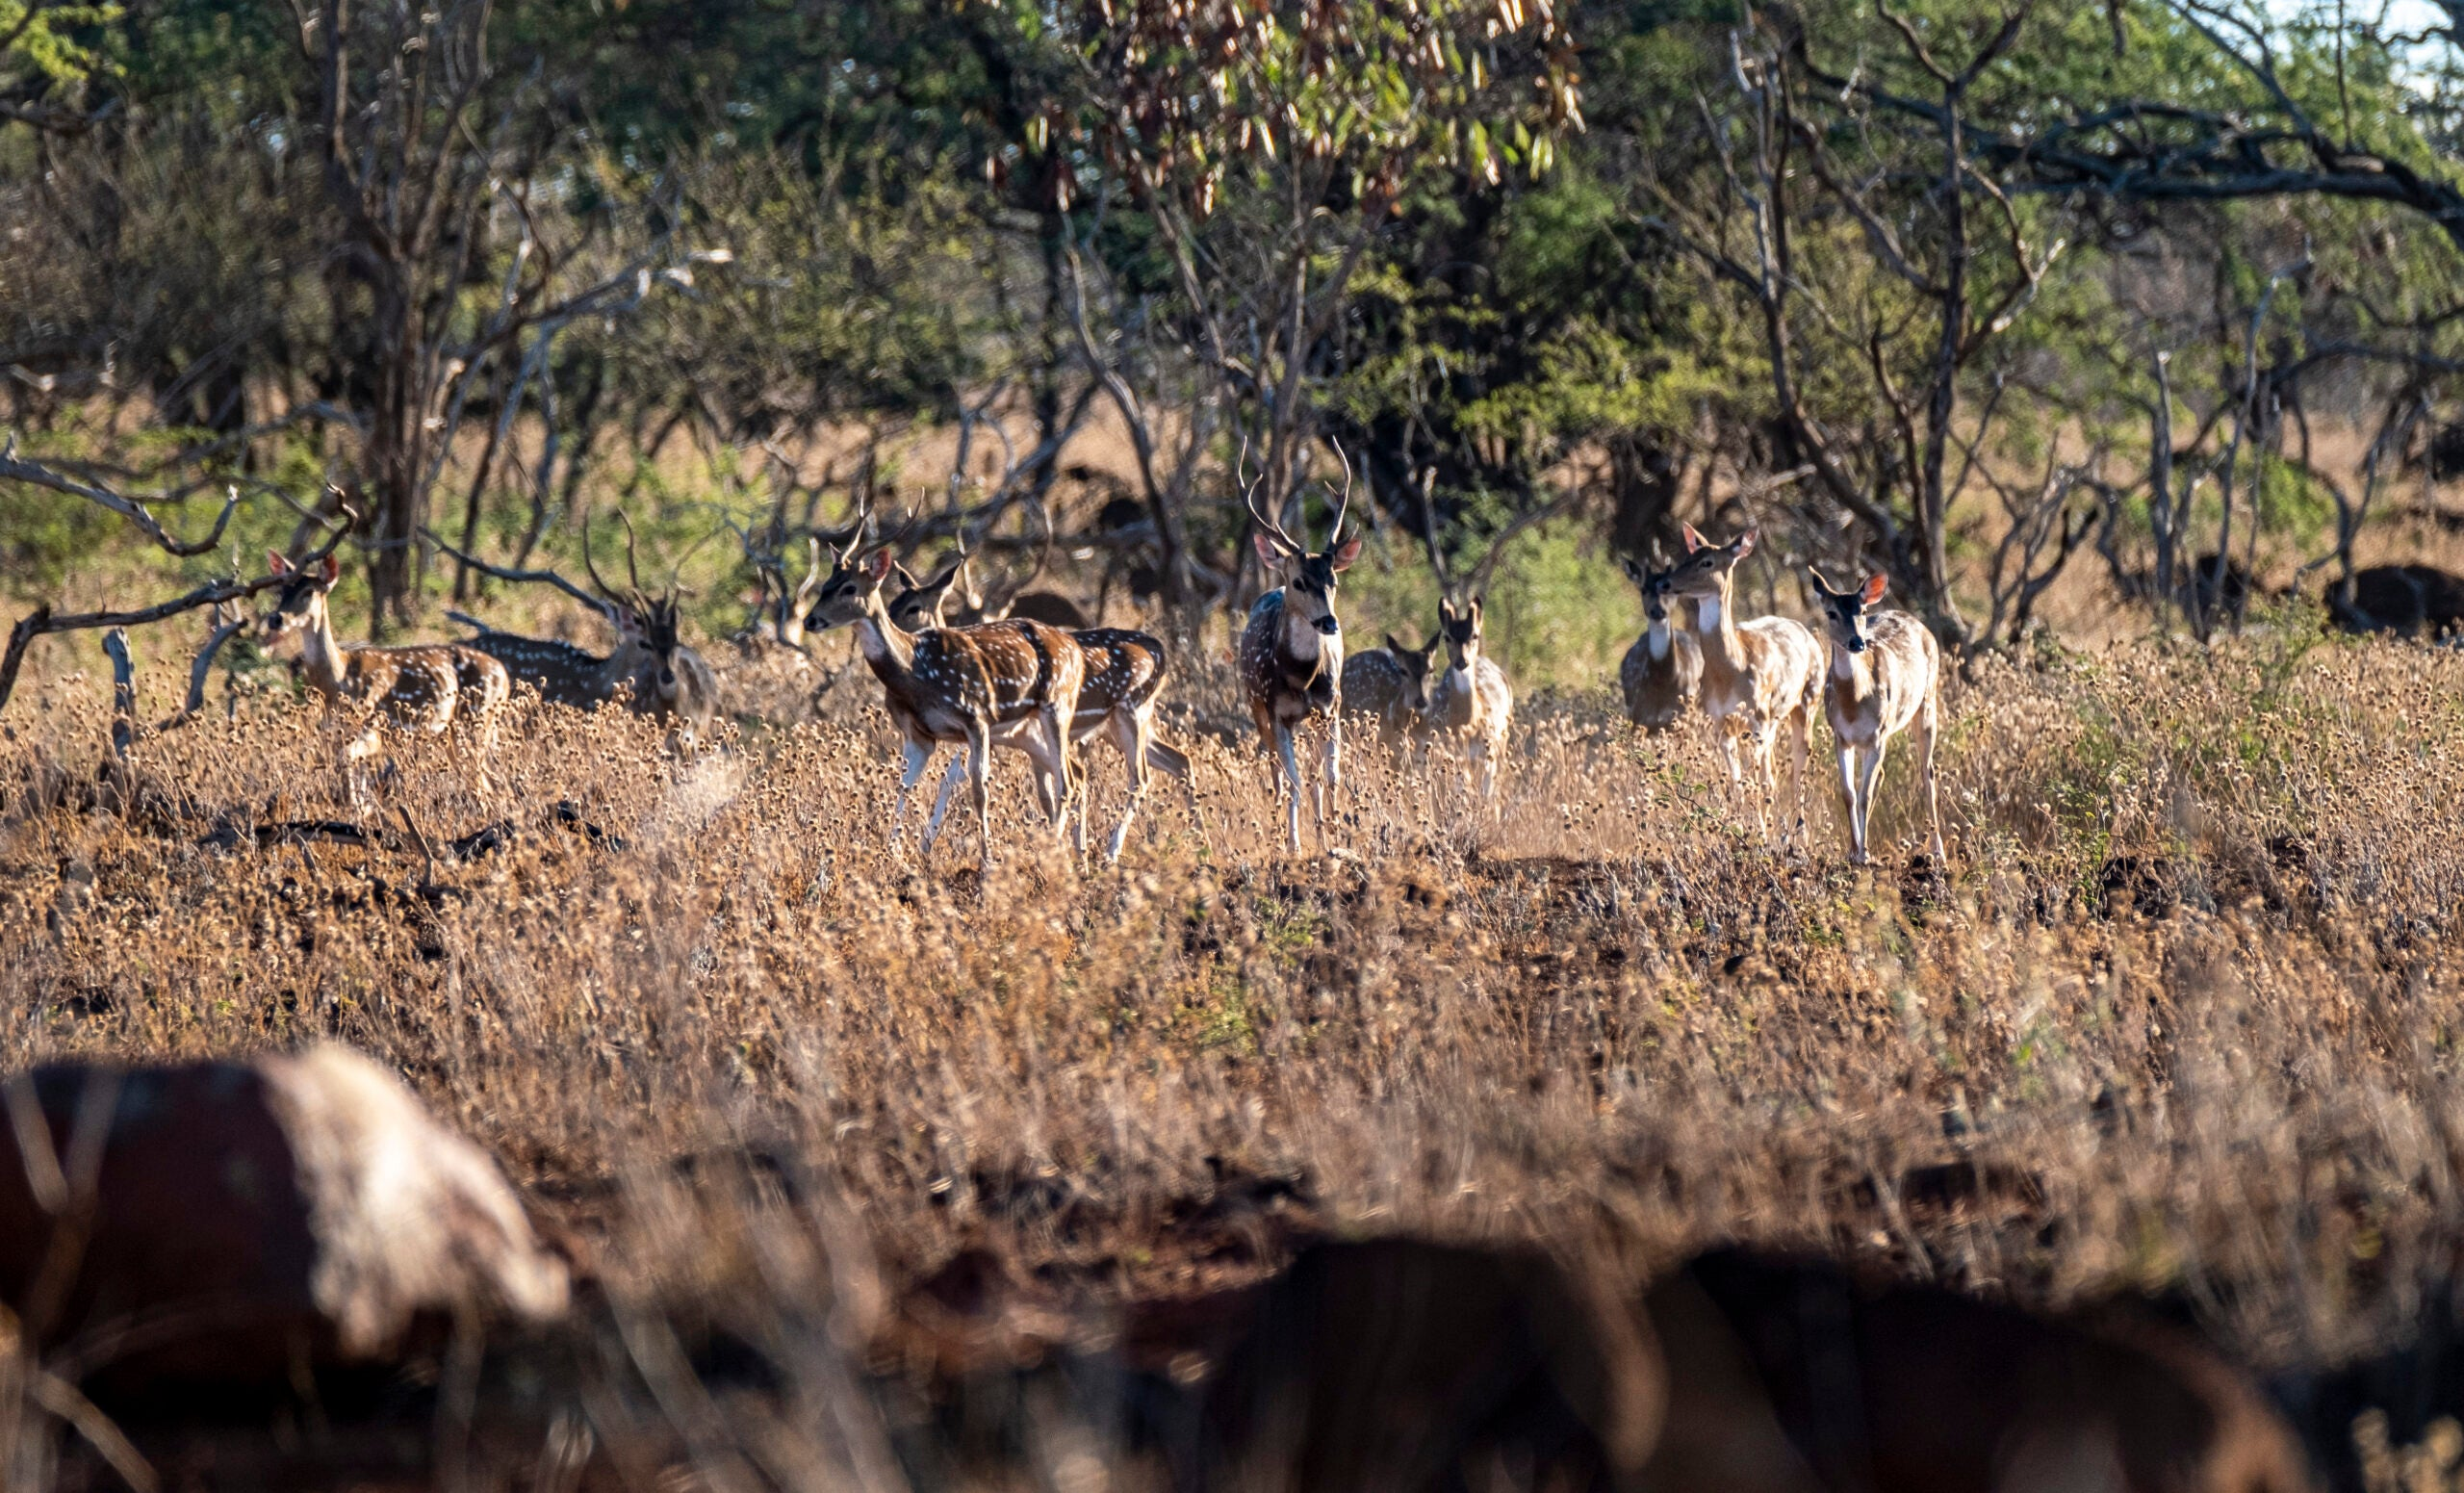 Overpopulated axis deer are ripe for regulated market hunting.